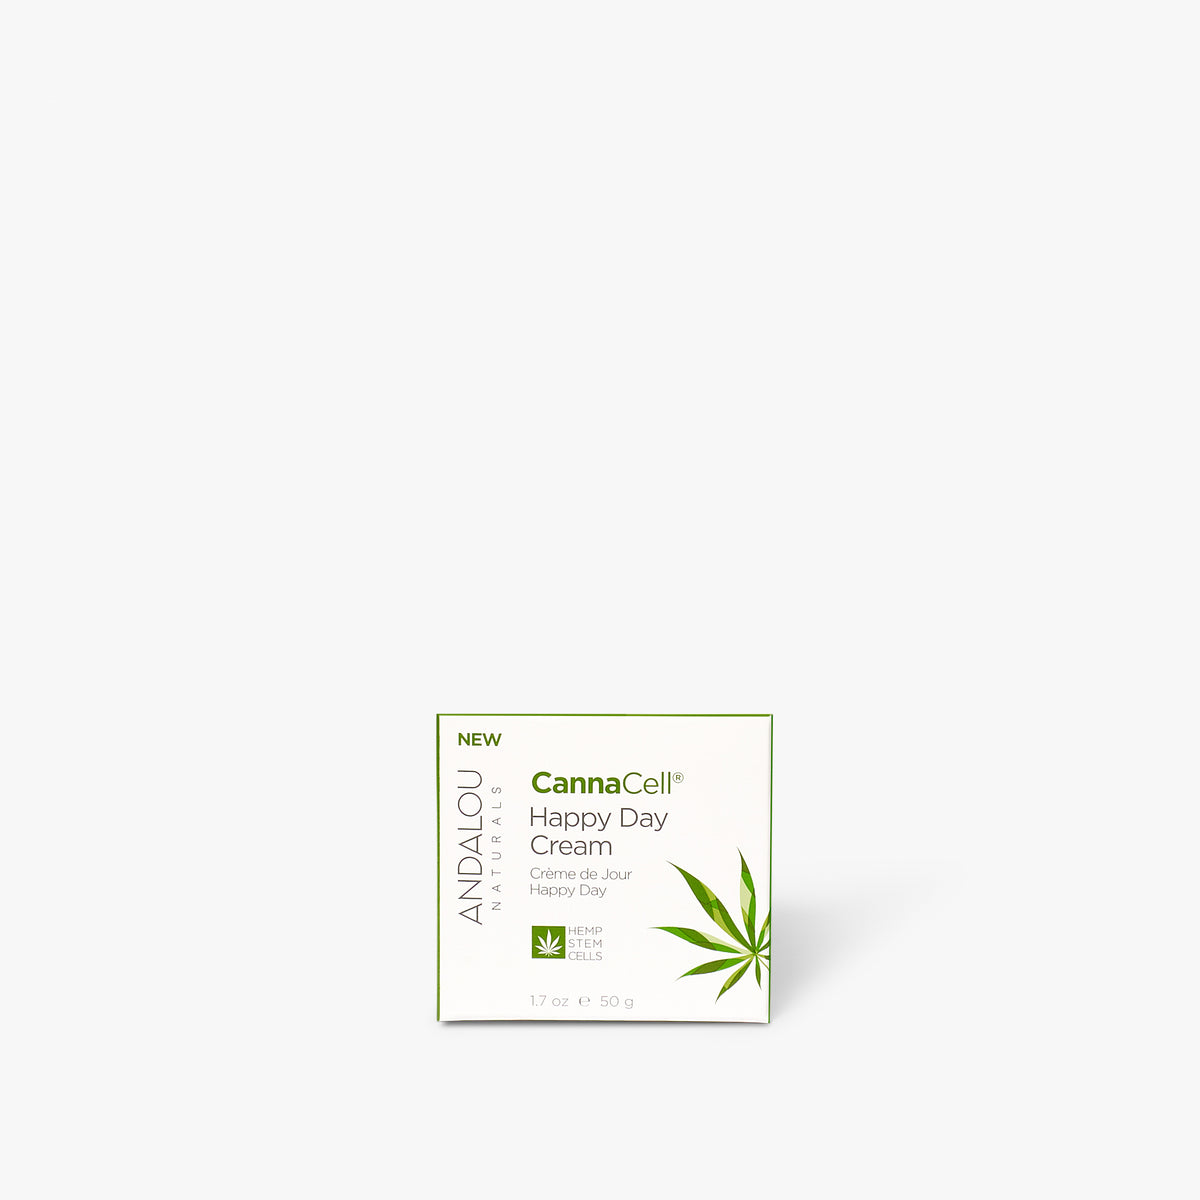 CannaCell Happy Day Cream box